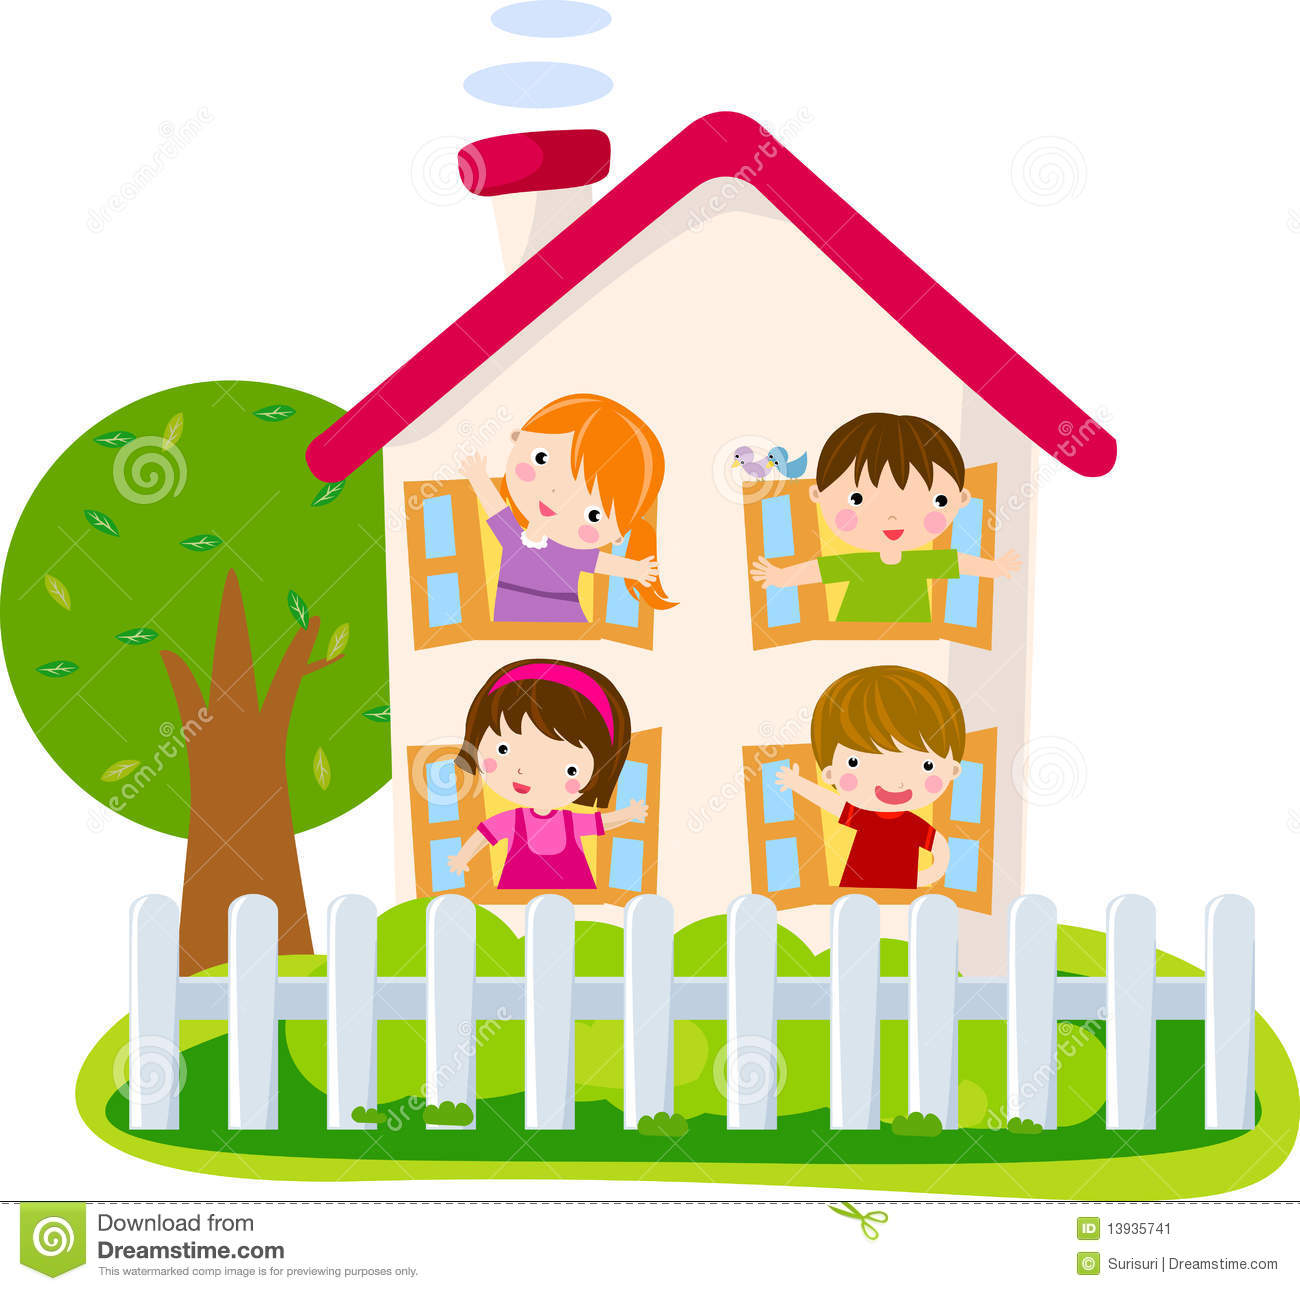 Cute house stock vector. Illustration of characters ...